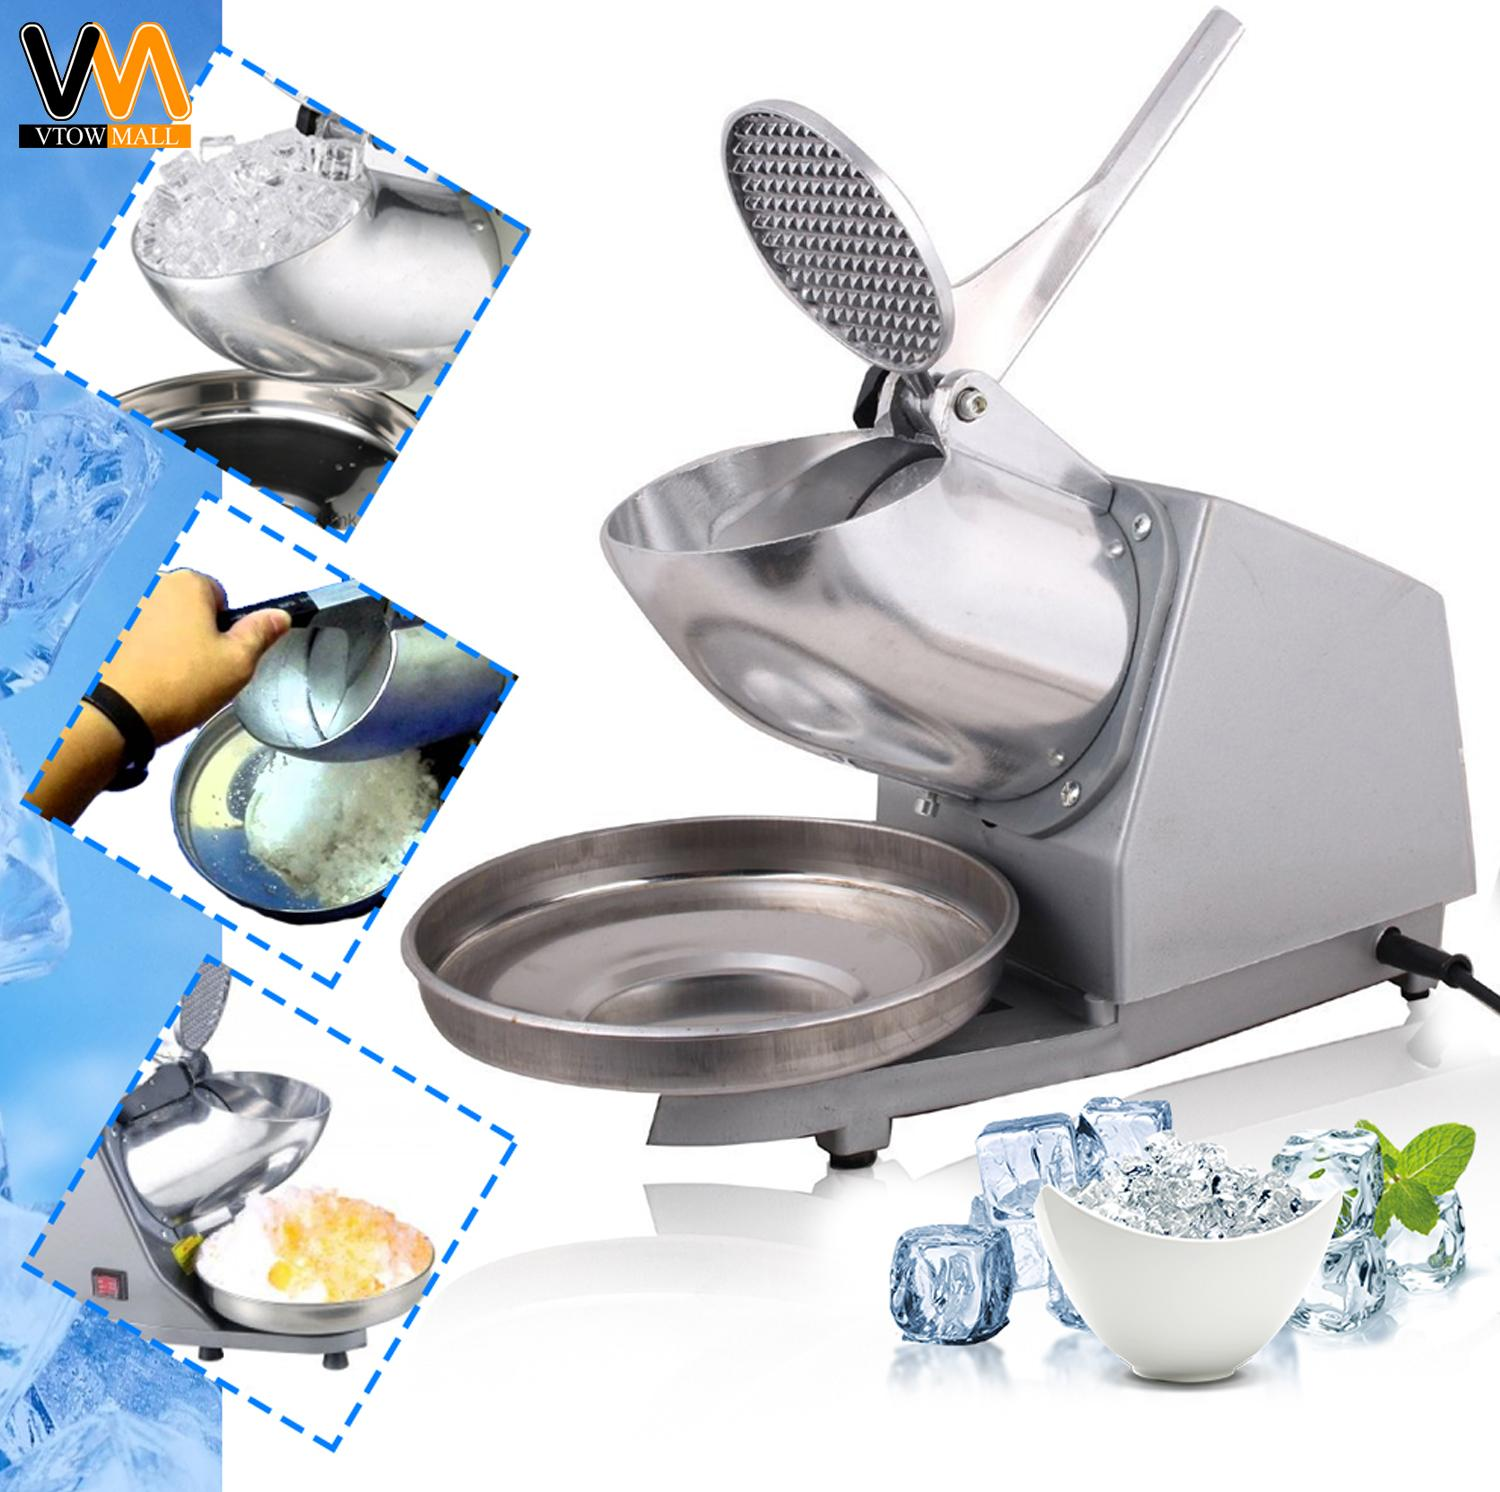 Ice Smashing Electric Crusher Machine By Vtow Cp Gadget.